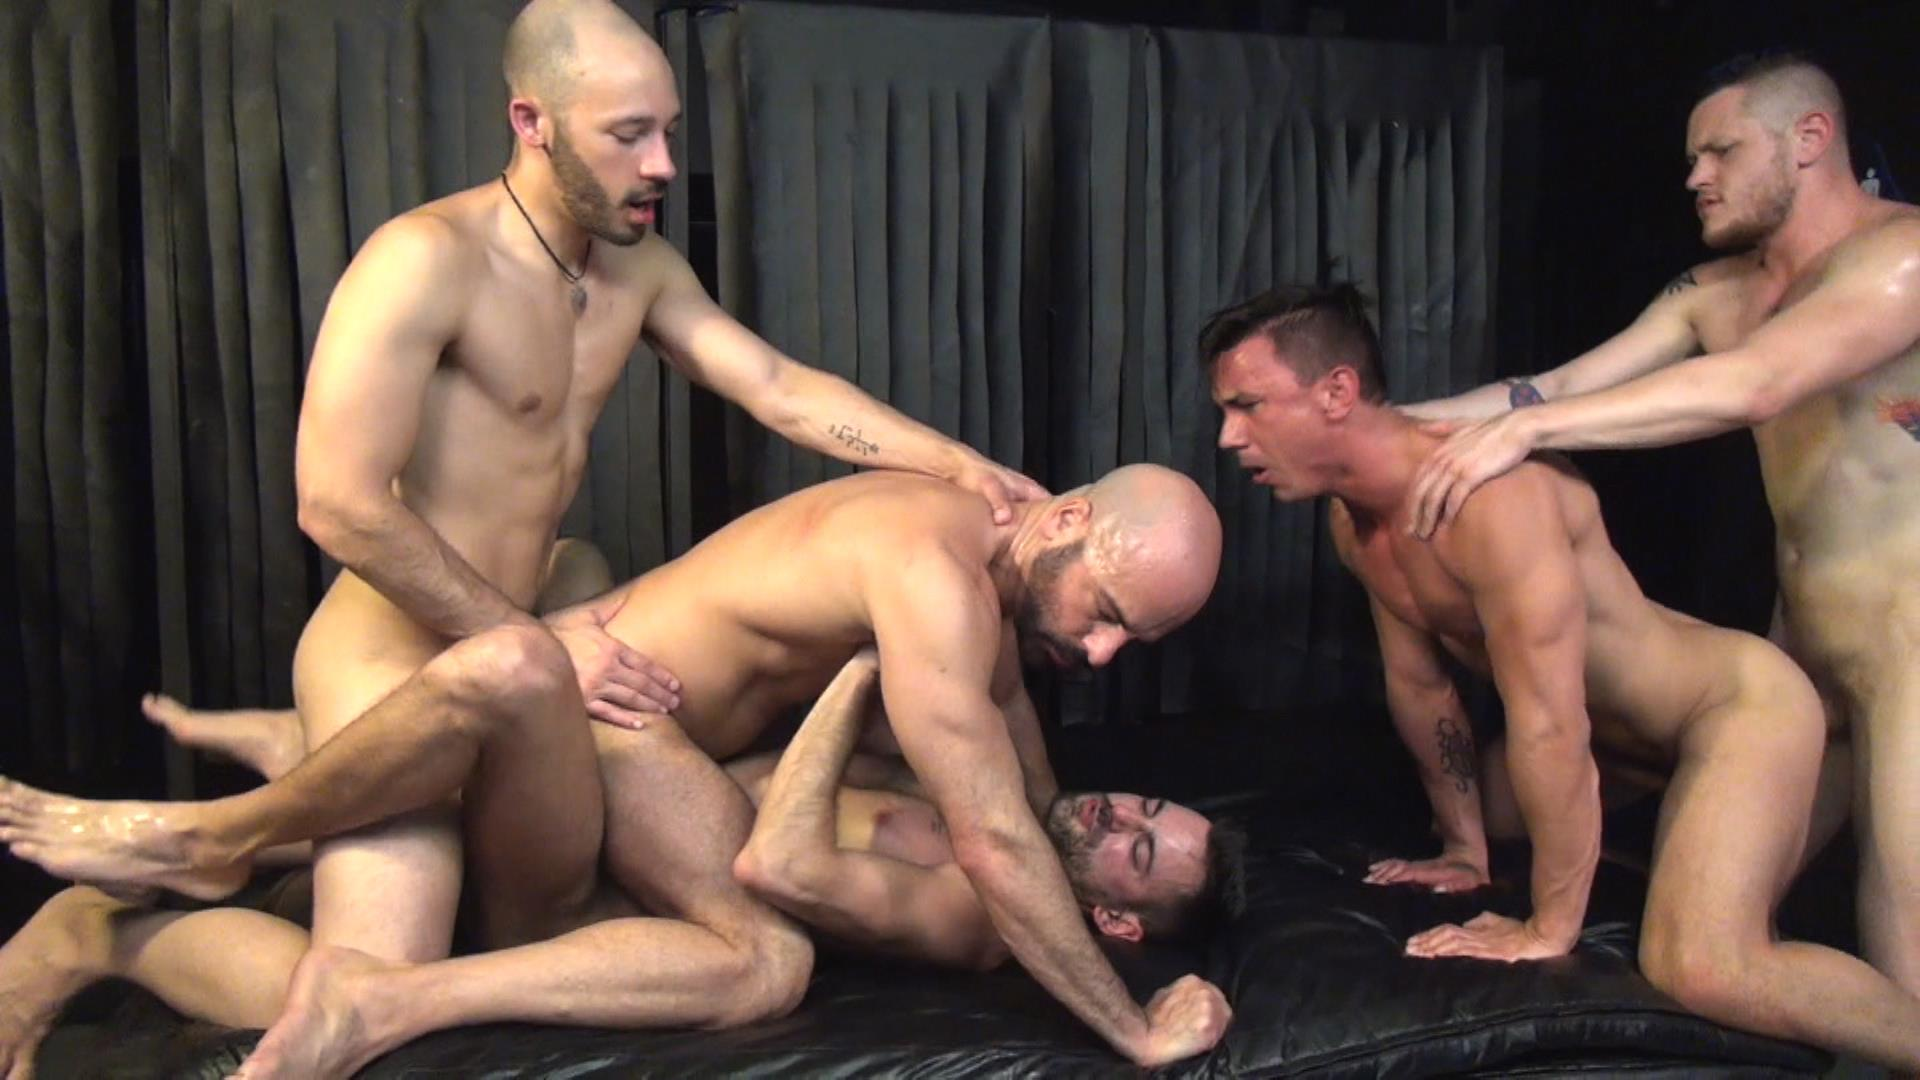 Raw Fuck Club Blue Bailey and Dylan Strokes and Adam Russo and Dean Brody and Jay Brix Bareback Orgy Amateur Gay Porn 7 Adam Russo Getting Double Penetrated At A Bareback Sex Party